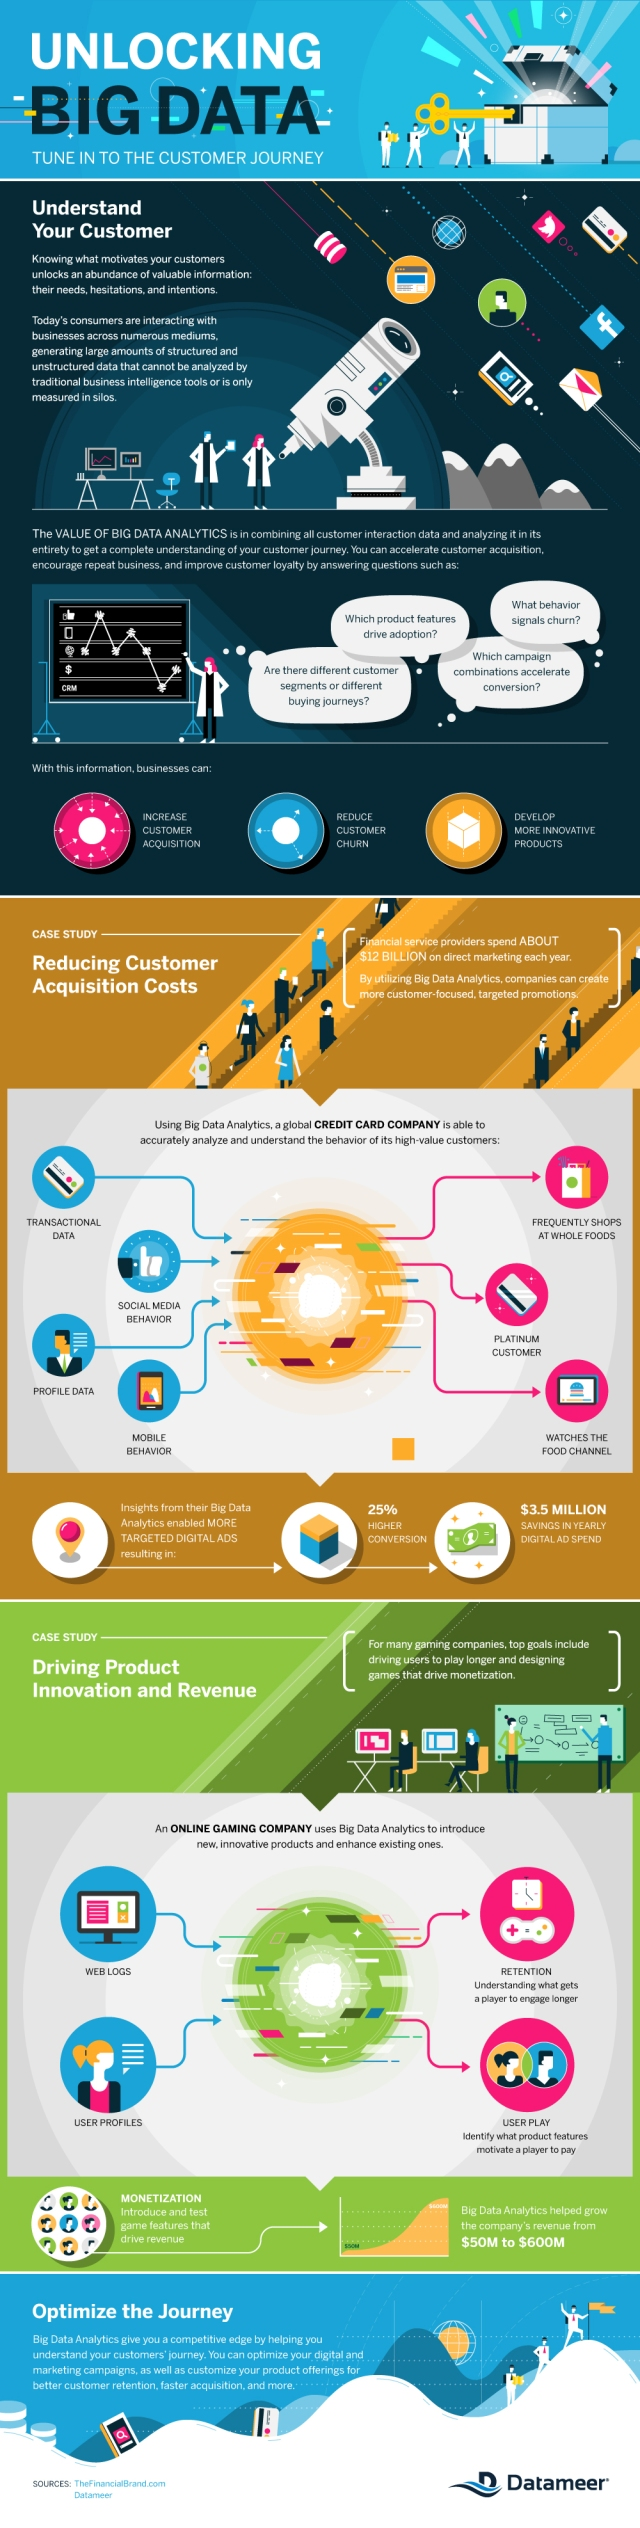 Why Business that use big data make more money (infographic)